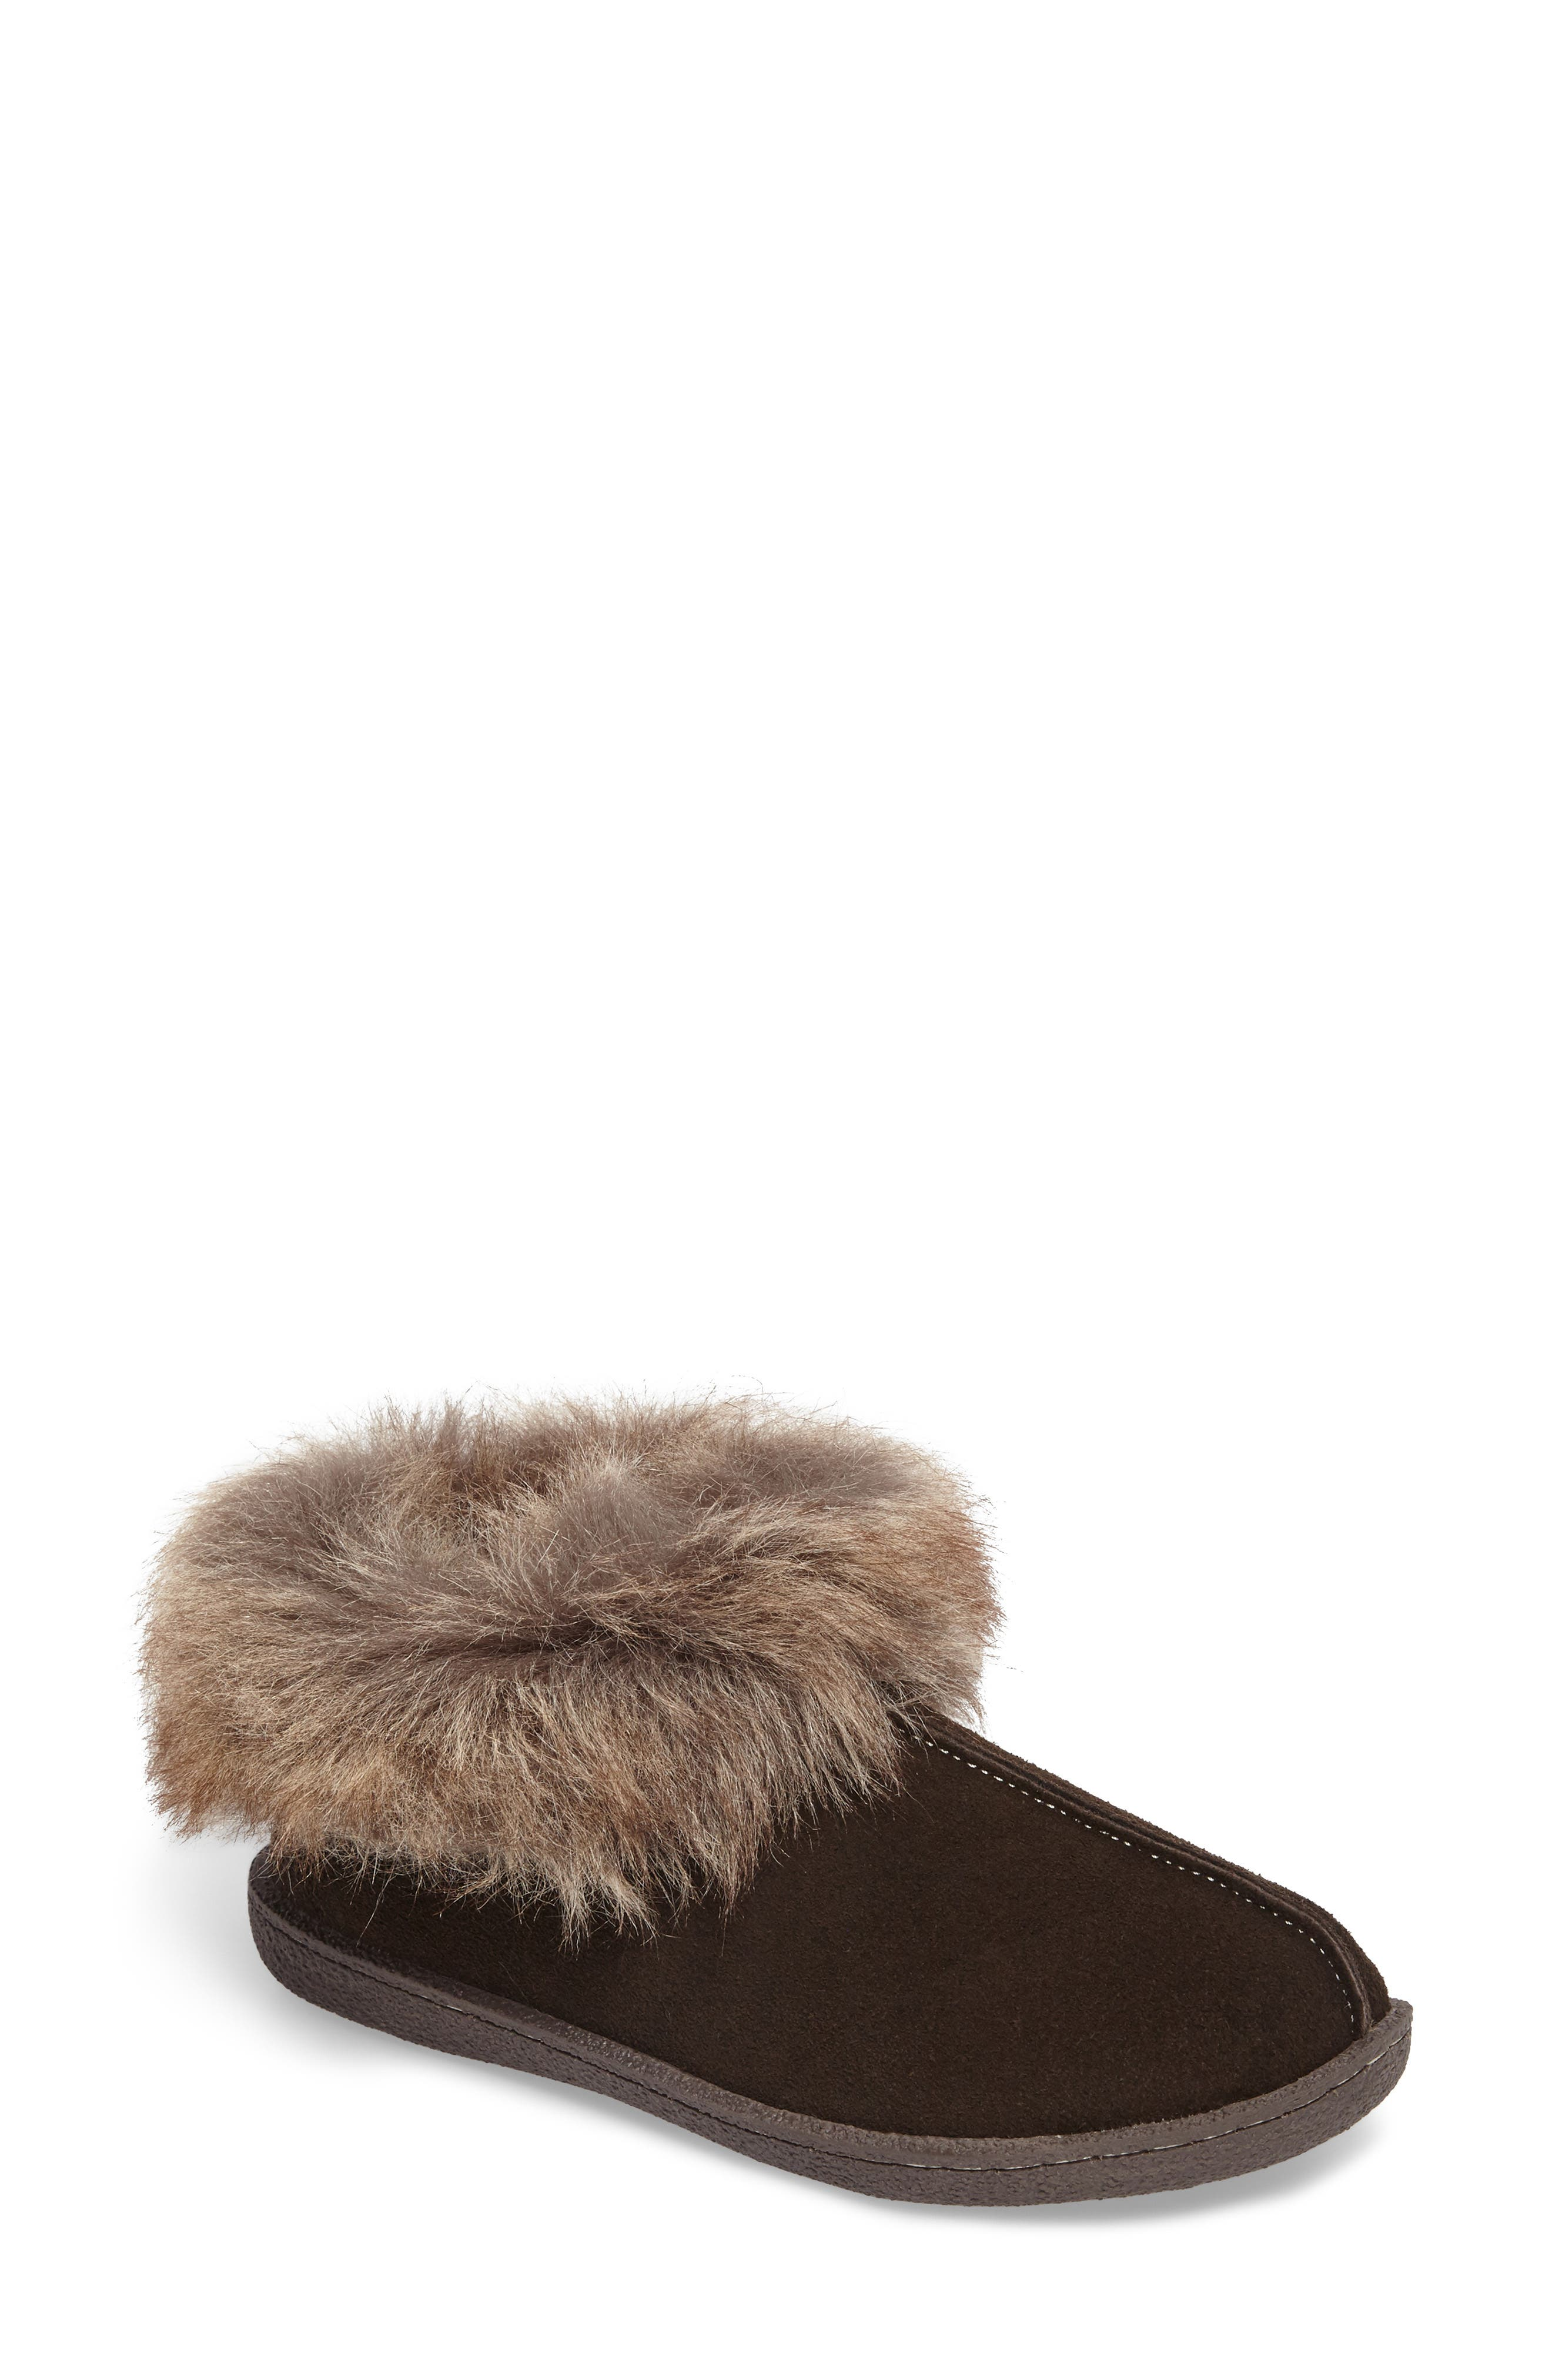 Autumn Ridge II Faux Fur Slipper Bootie,                             Main thumbnail 1, color,